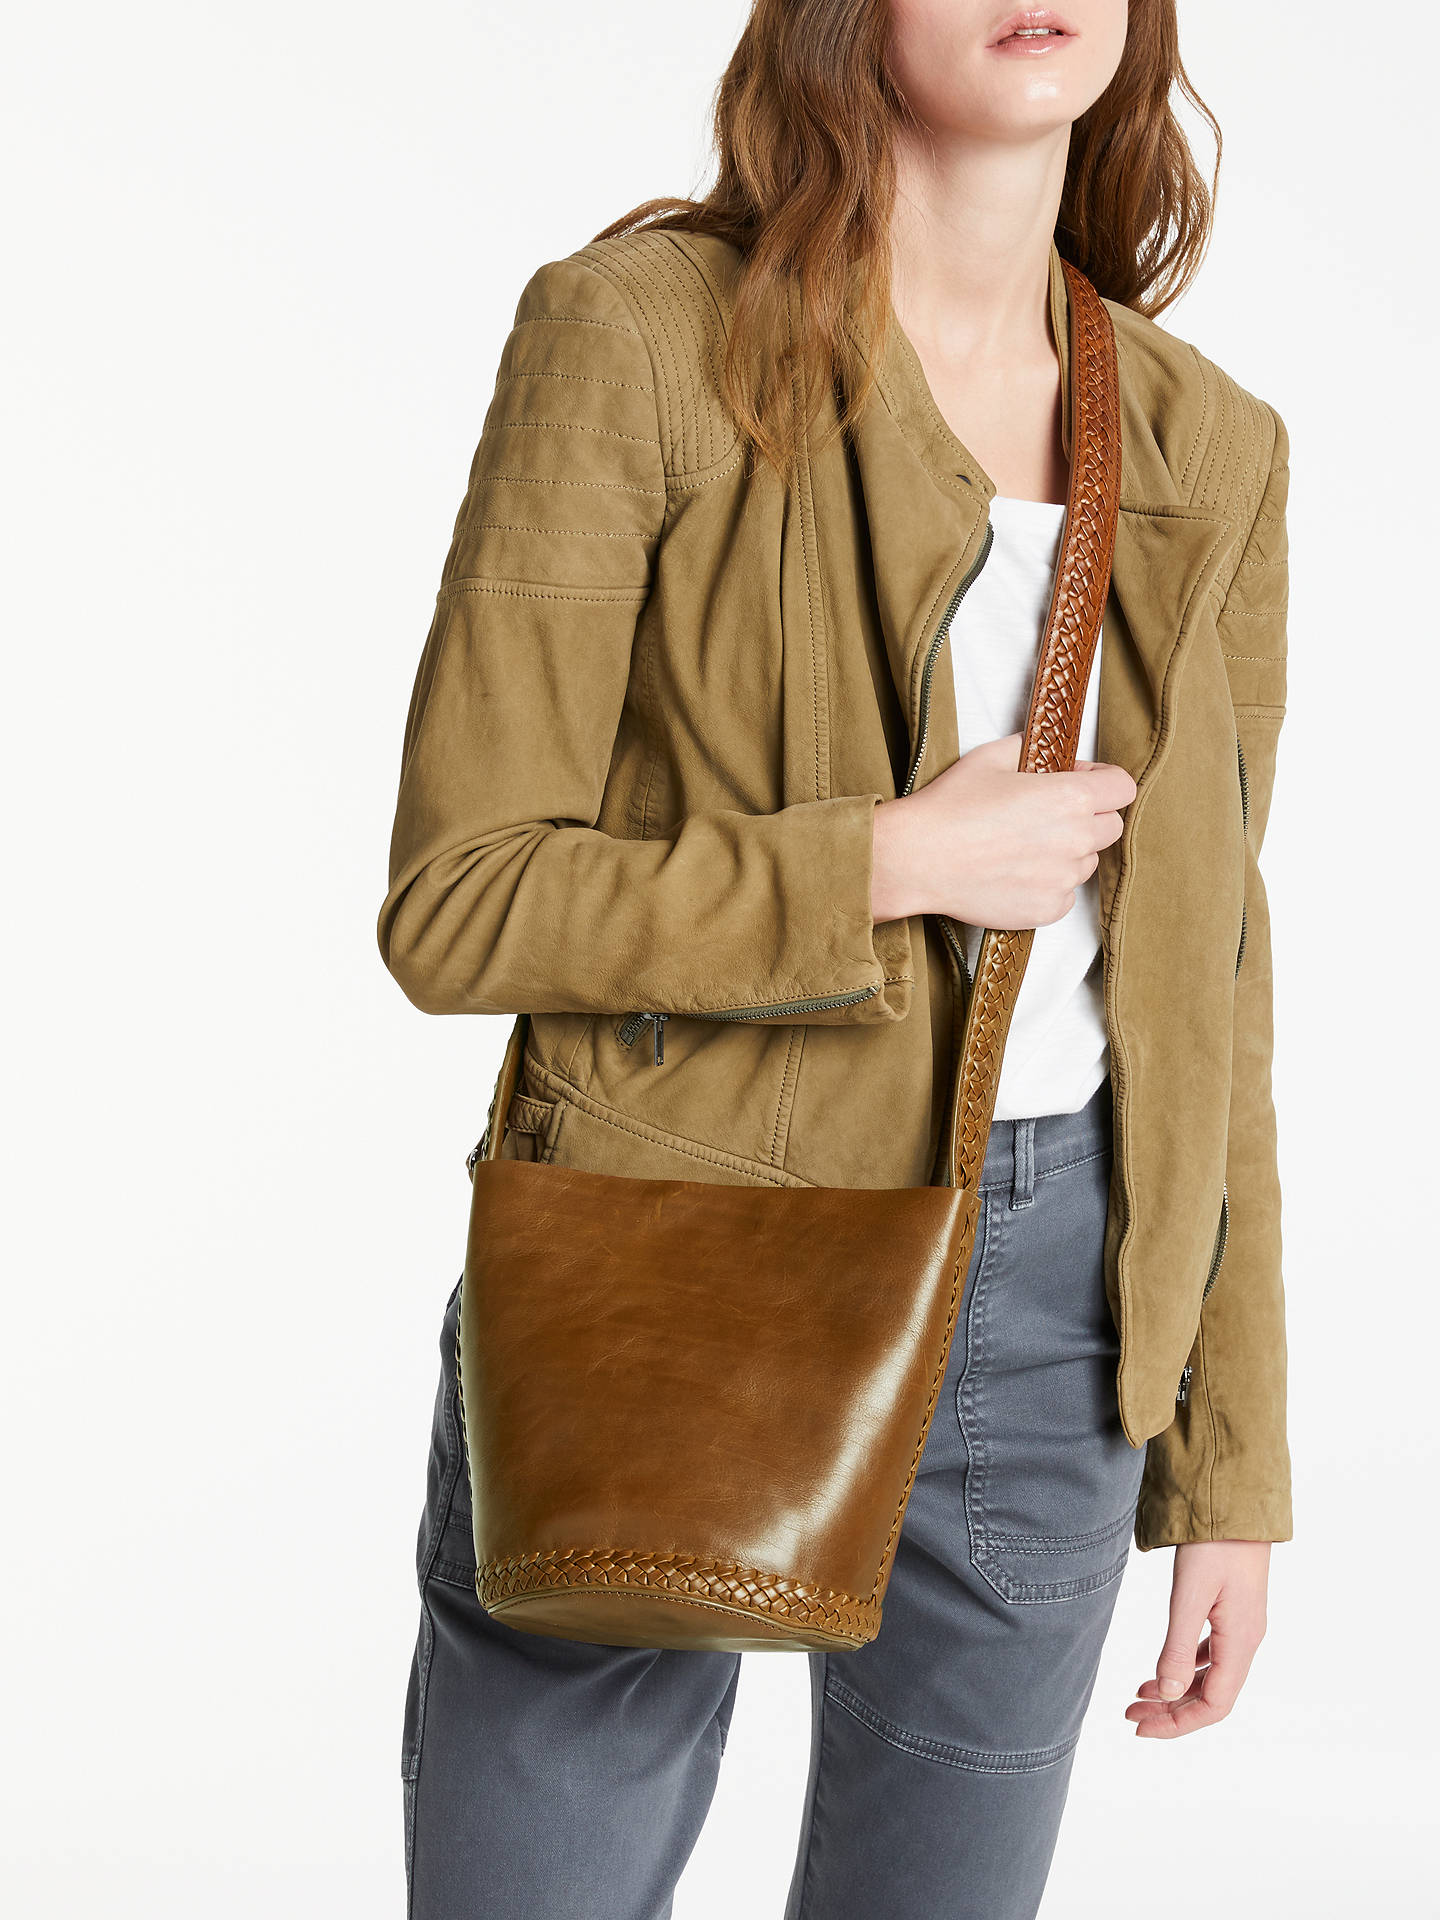 BuyAND/OR Isabella Leather Whipstitch Small Bucket Bag, Tan Online at johnlewis.com